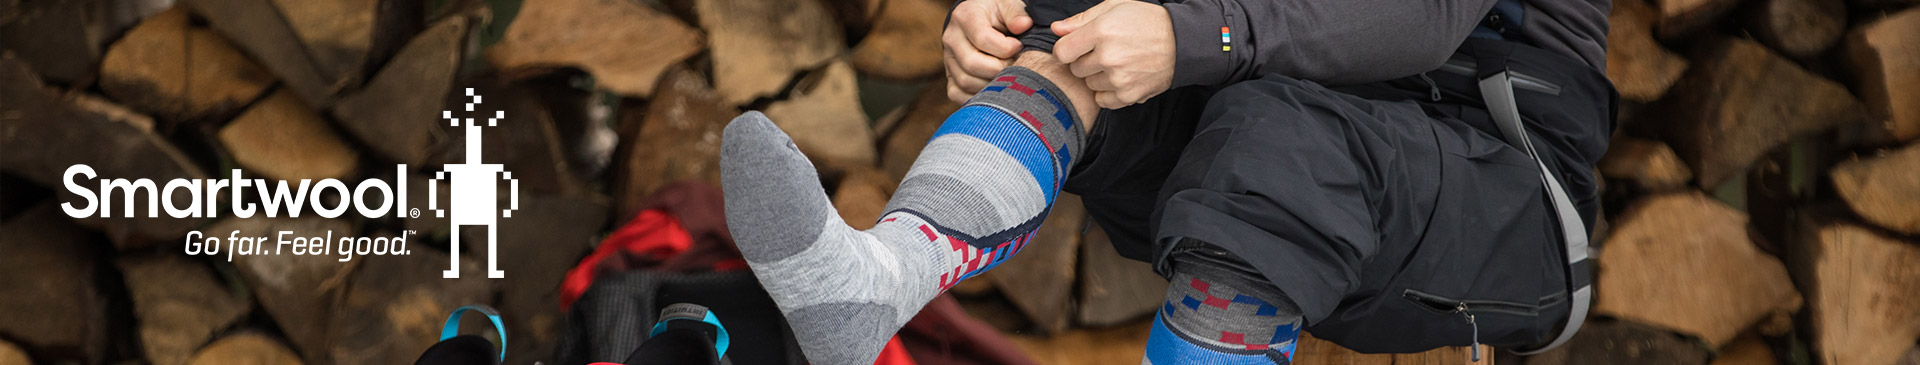 Smartwool. Go far. Feel good.